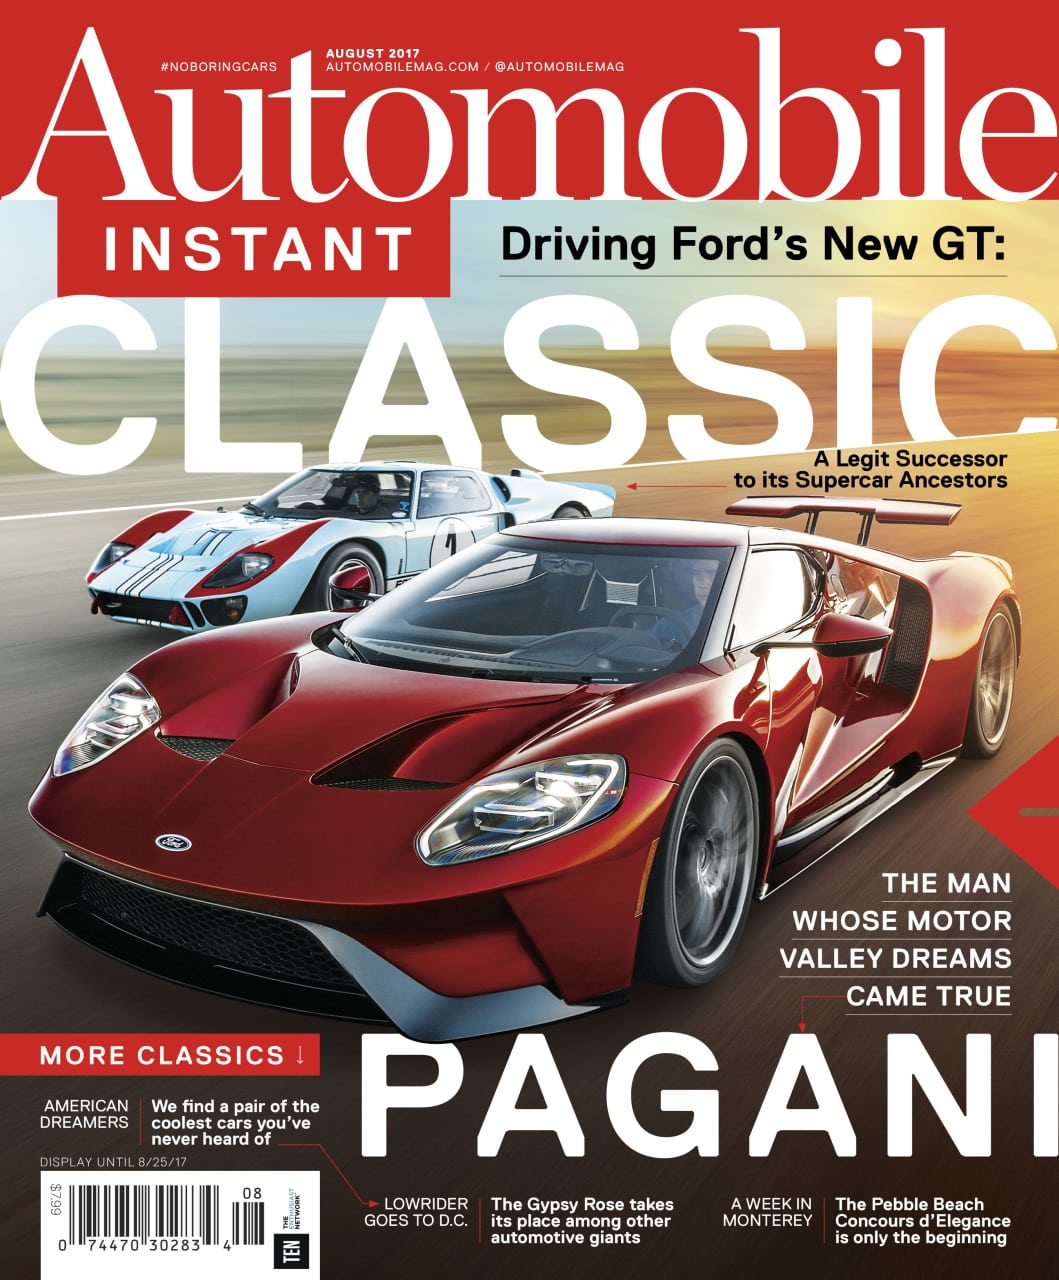 Automobile Reveals New Print Look, Expanded Lifestyle Coverage - Folio: